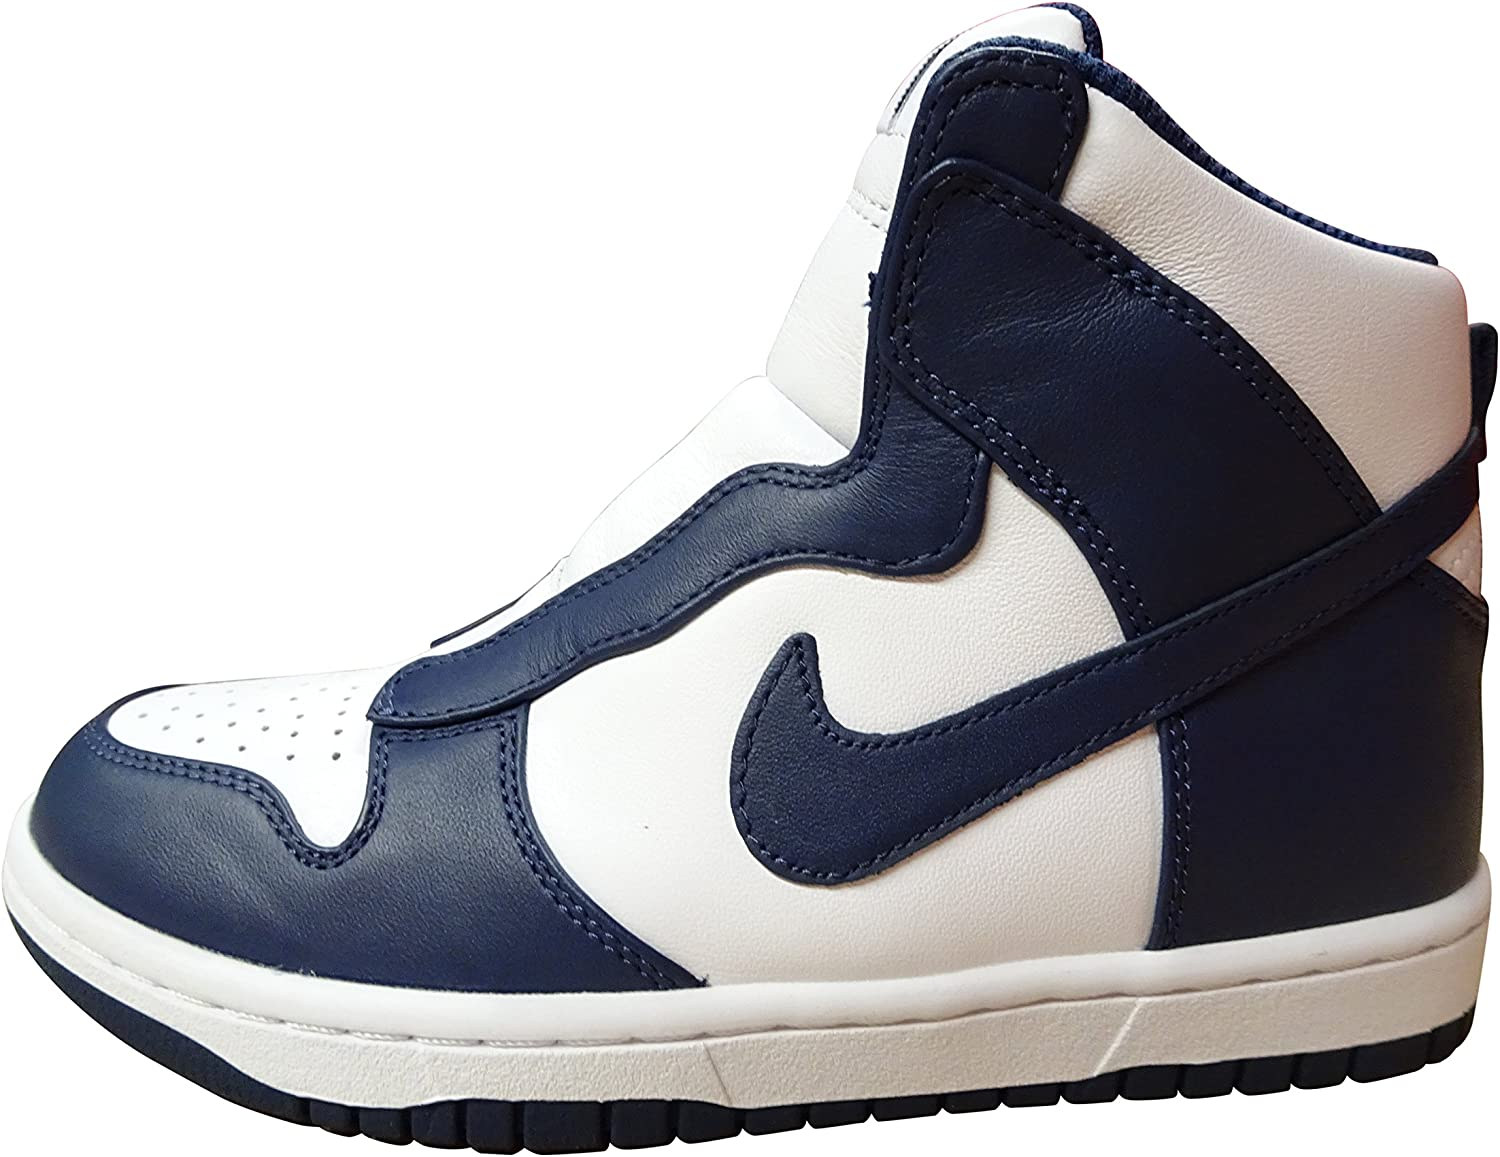 Nike Womens Dunk LUX SACAI Hi Top Trainers 776446 Sneakers shoes (US 9, Midnight Navy Midnight Navy 441)